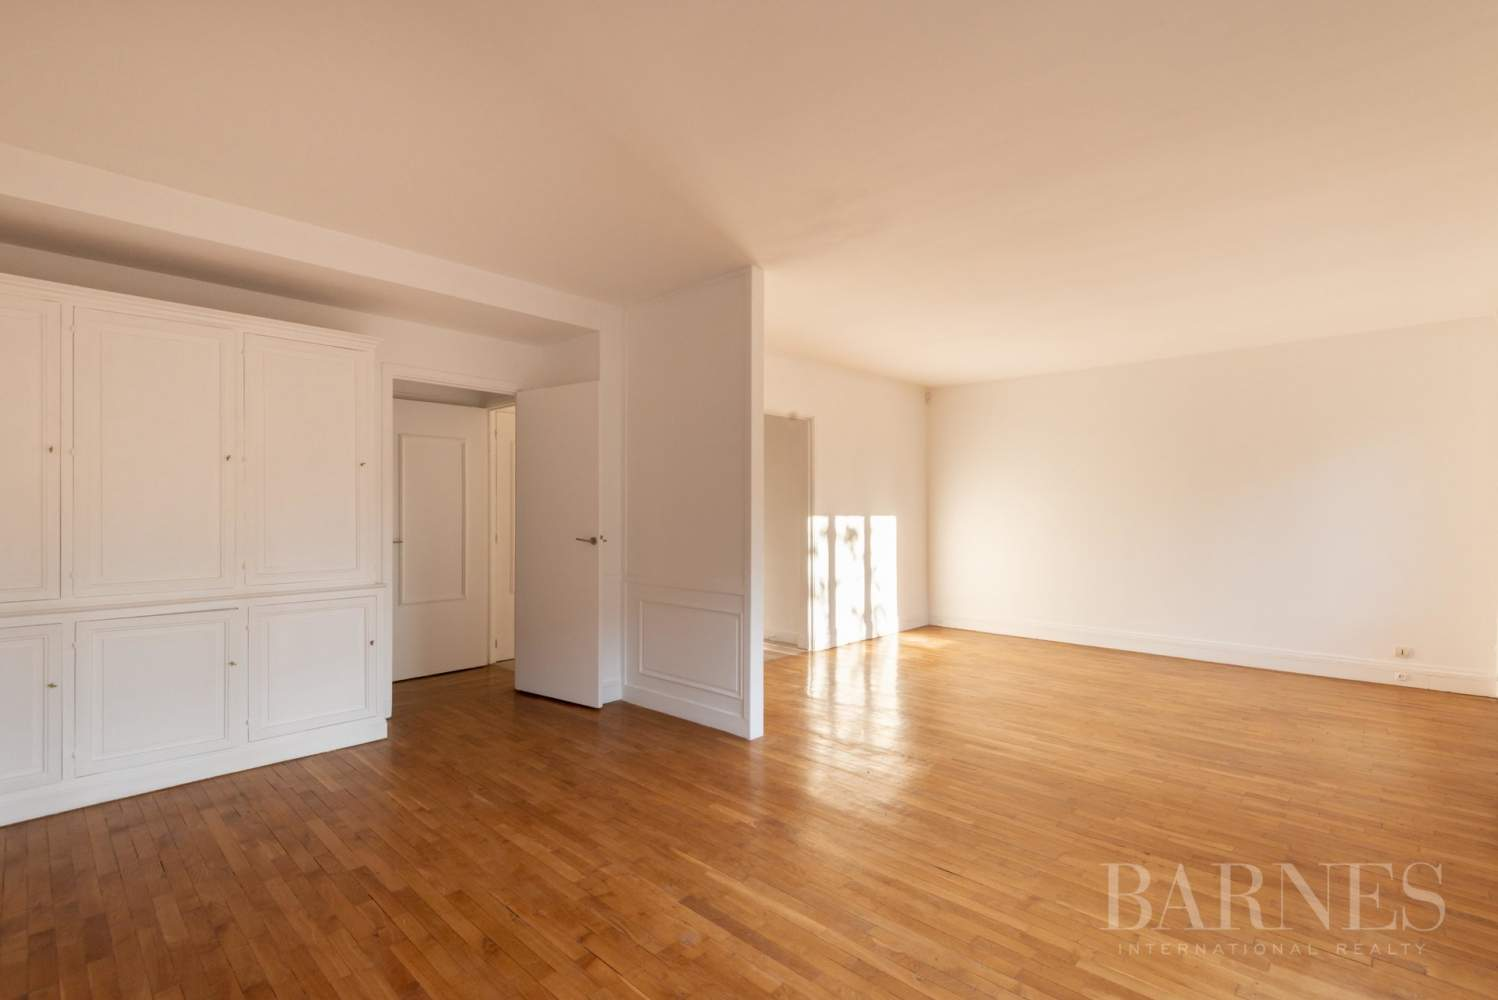 NEUILLY CHEZY APPARTEMENT 3 CHAMBRES VIDE PARKING BALCON picture 2